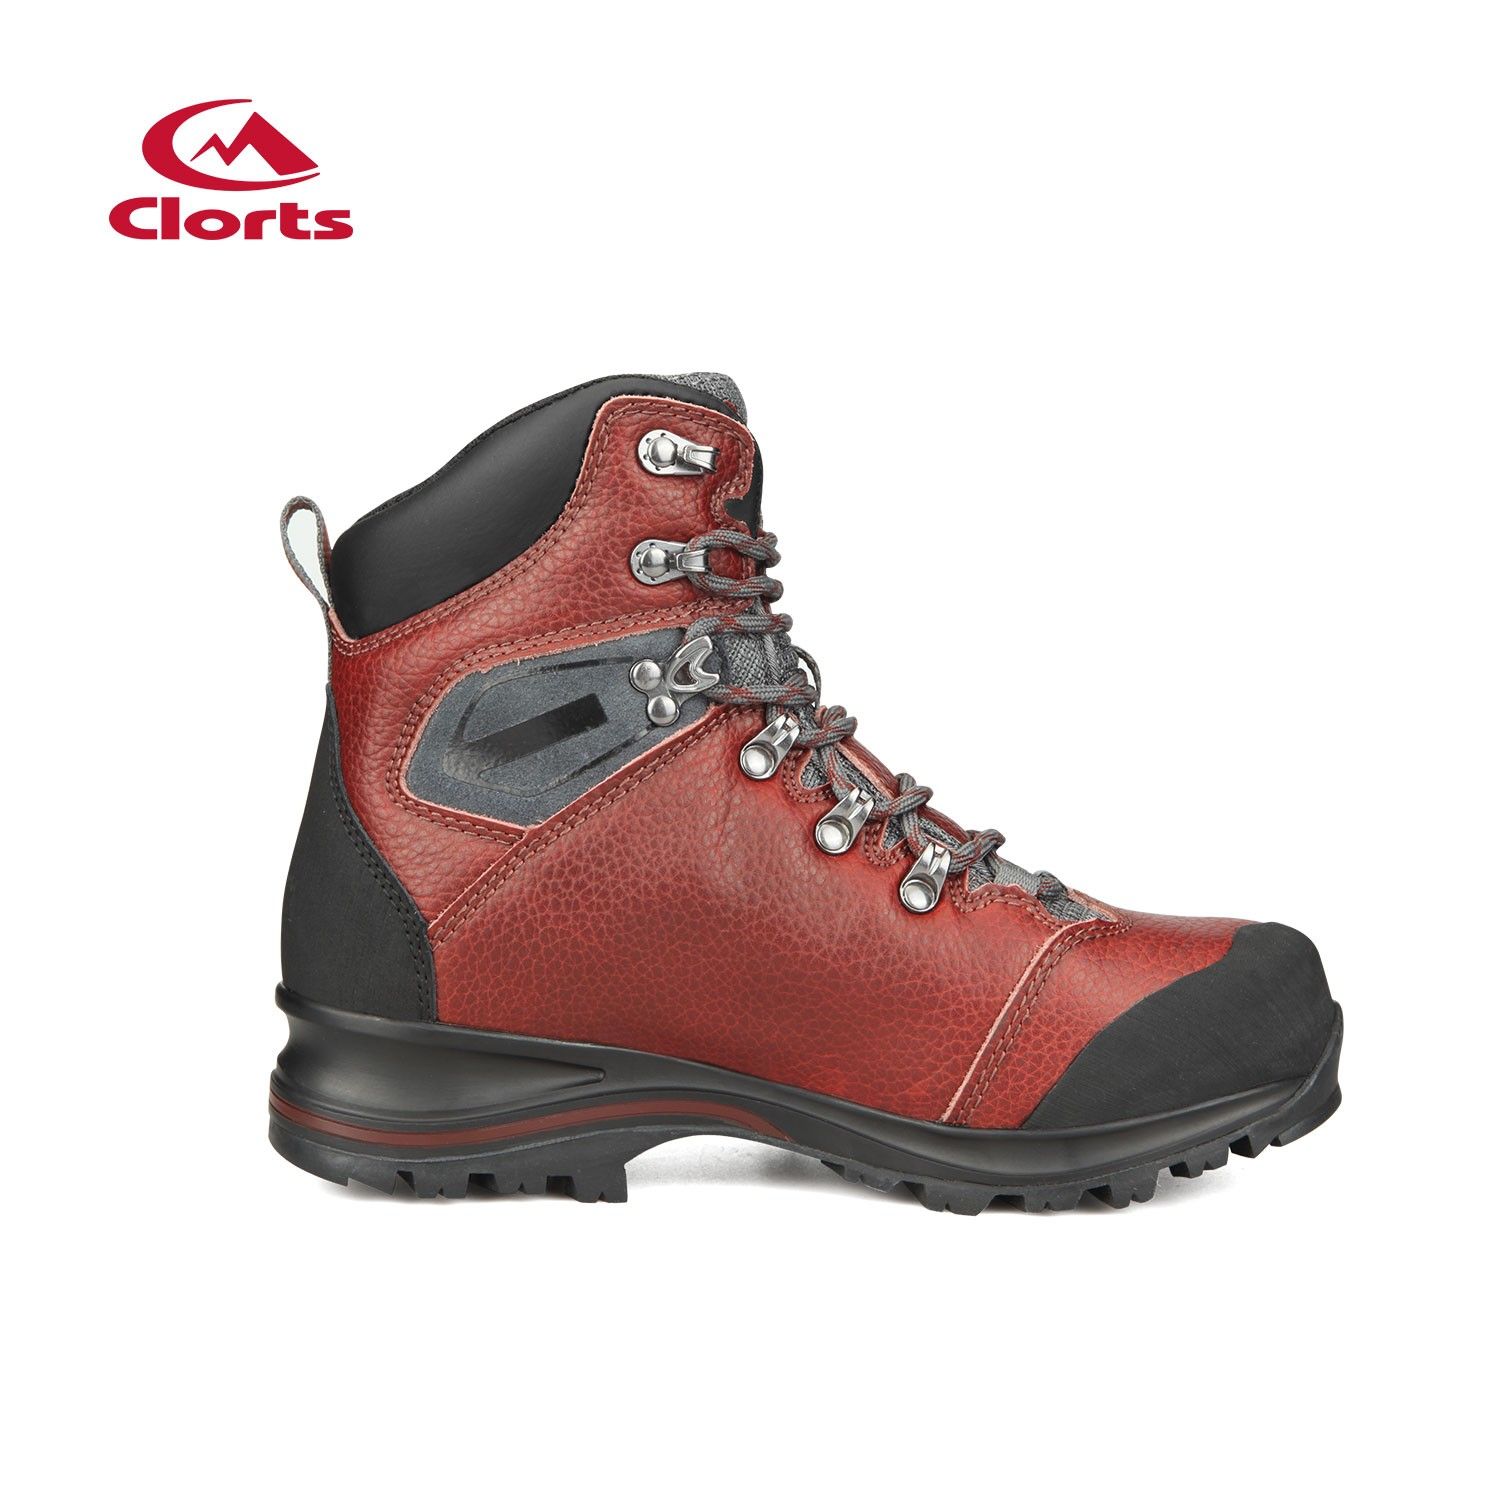 Adults PU Leather Hiking Boots Manufacturers, Adults PU Leather Hiking Boots Factory, Supply Adults PU Leather Hiking Boots